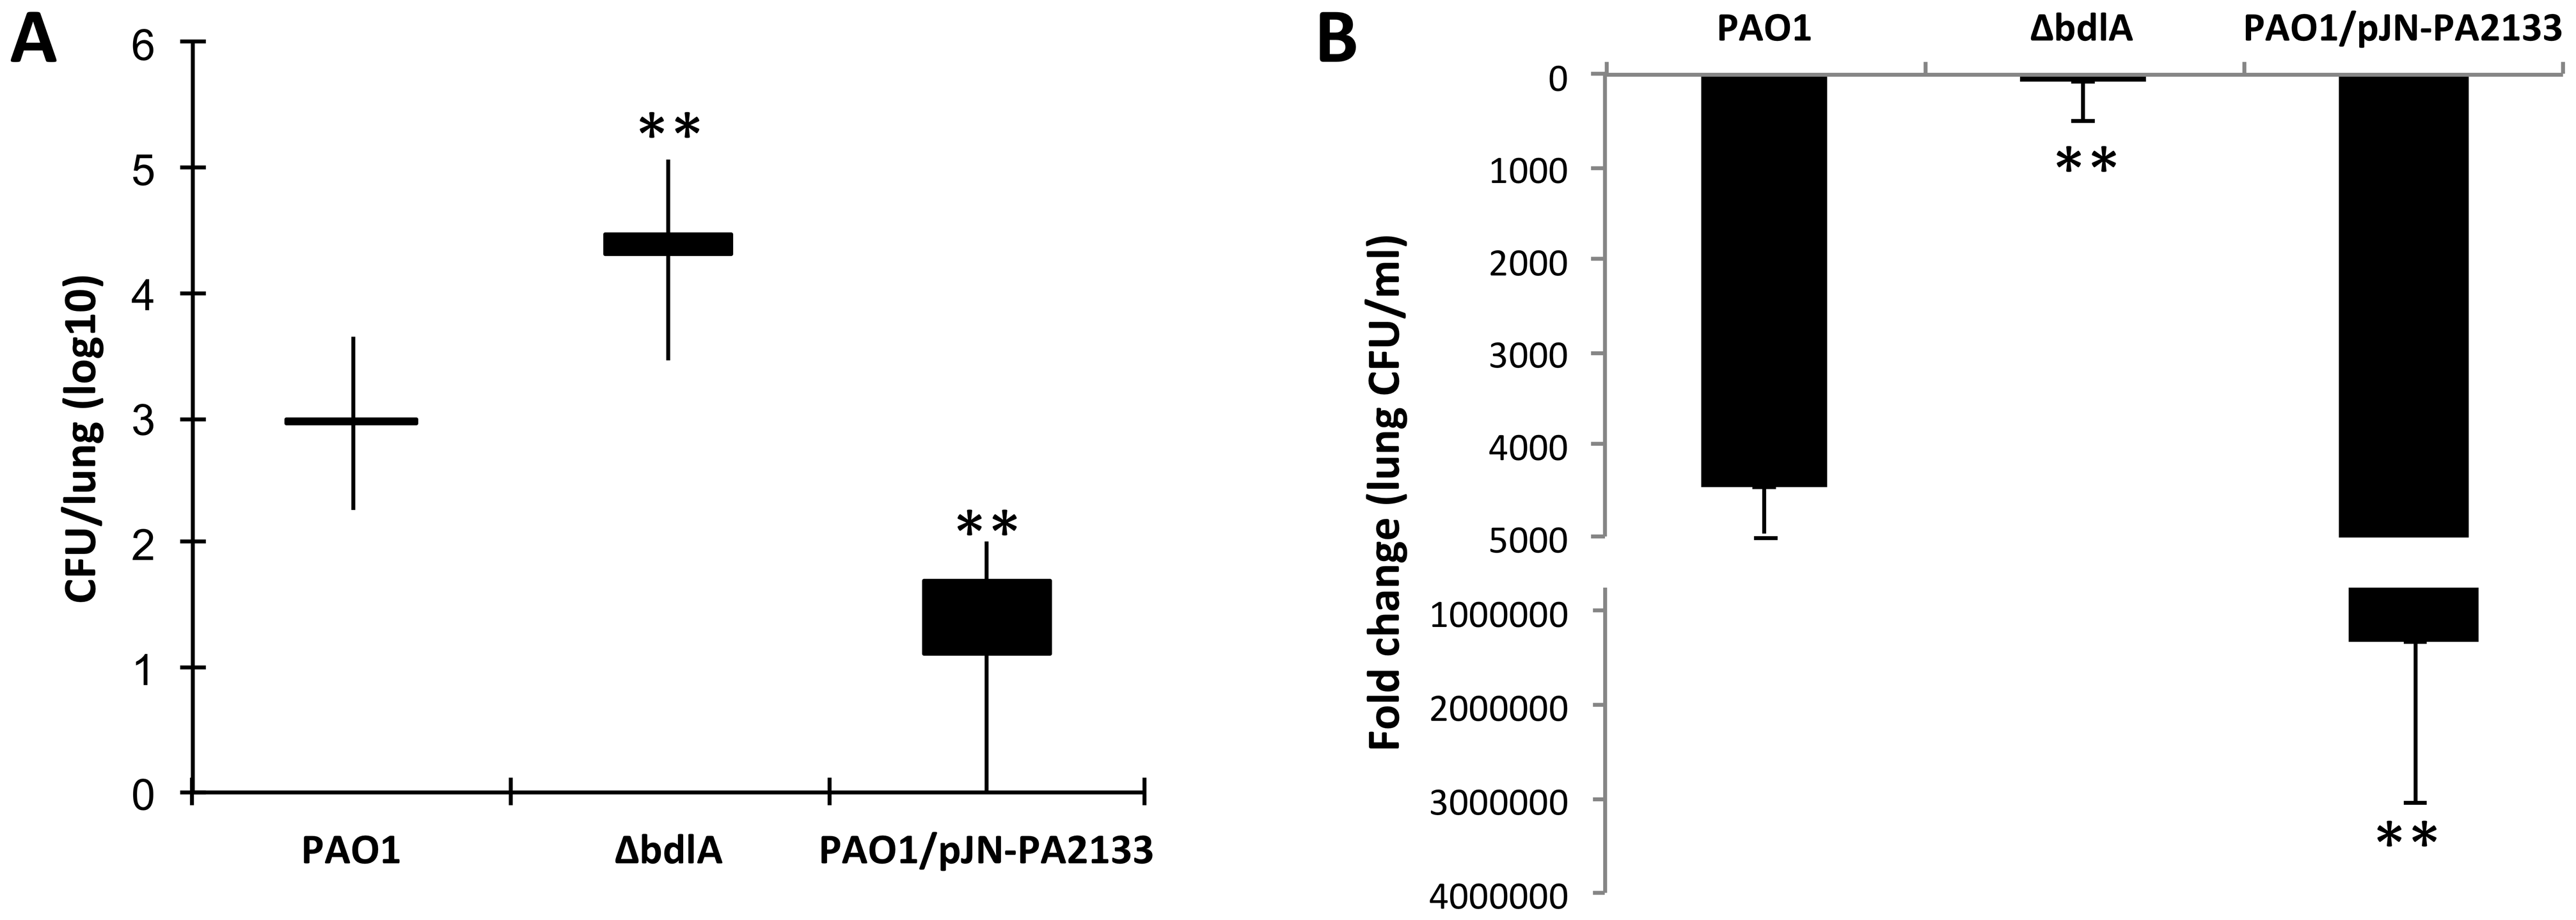 Impaired dispersion correlates with increased persistence as determined using a chronic murine pneumonia infection model.